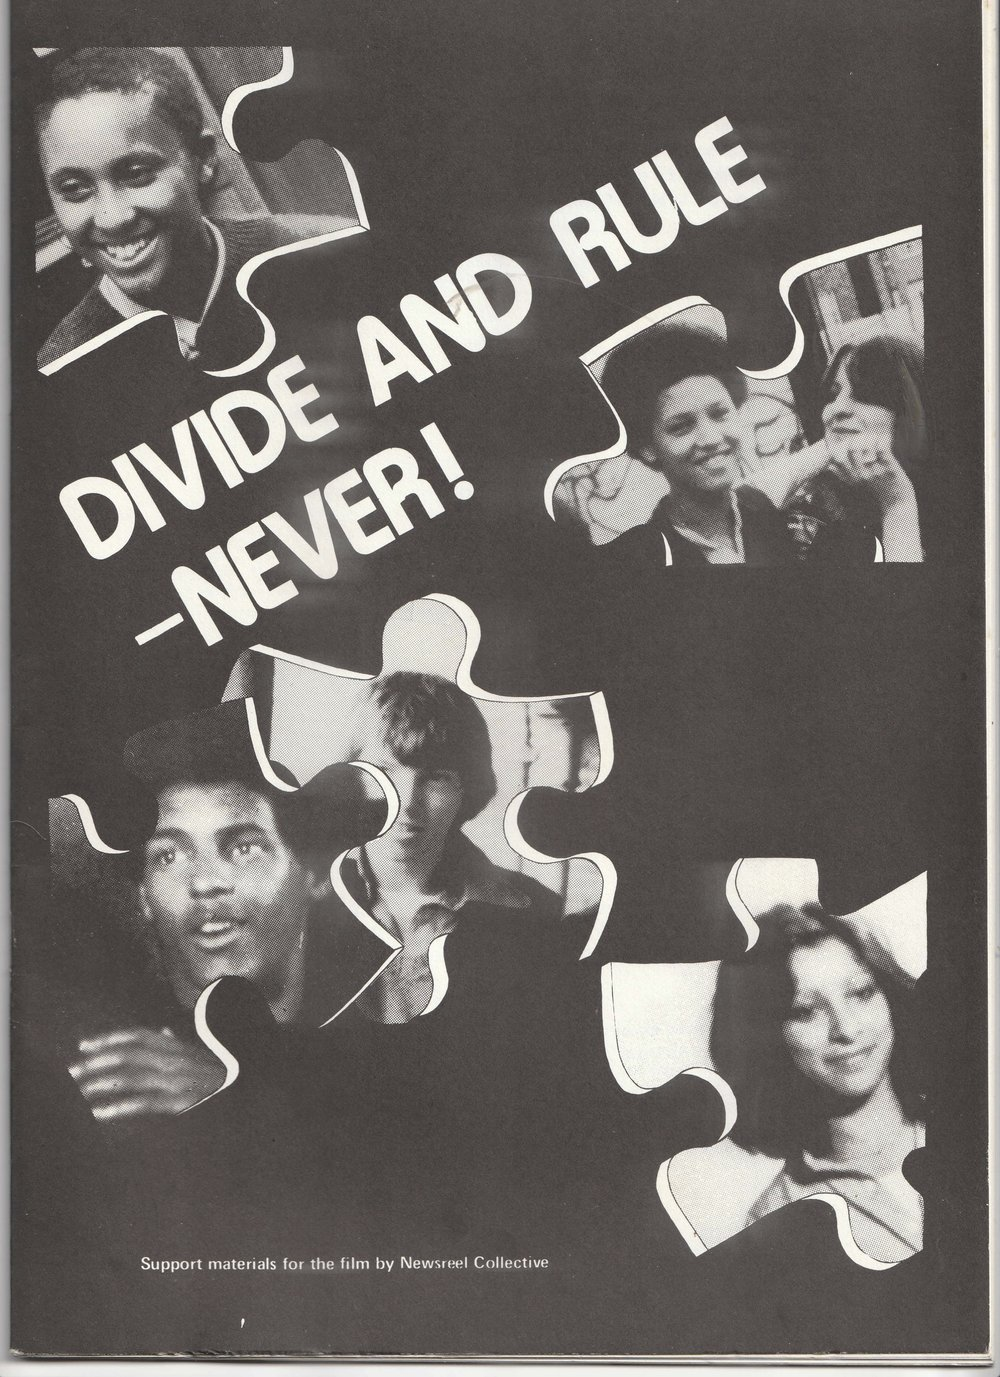 Front cover of  Divide and Rule – Never!  support booklet Newsreel Collective devised for teachers using the film in class, 1978